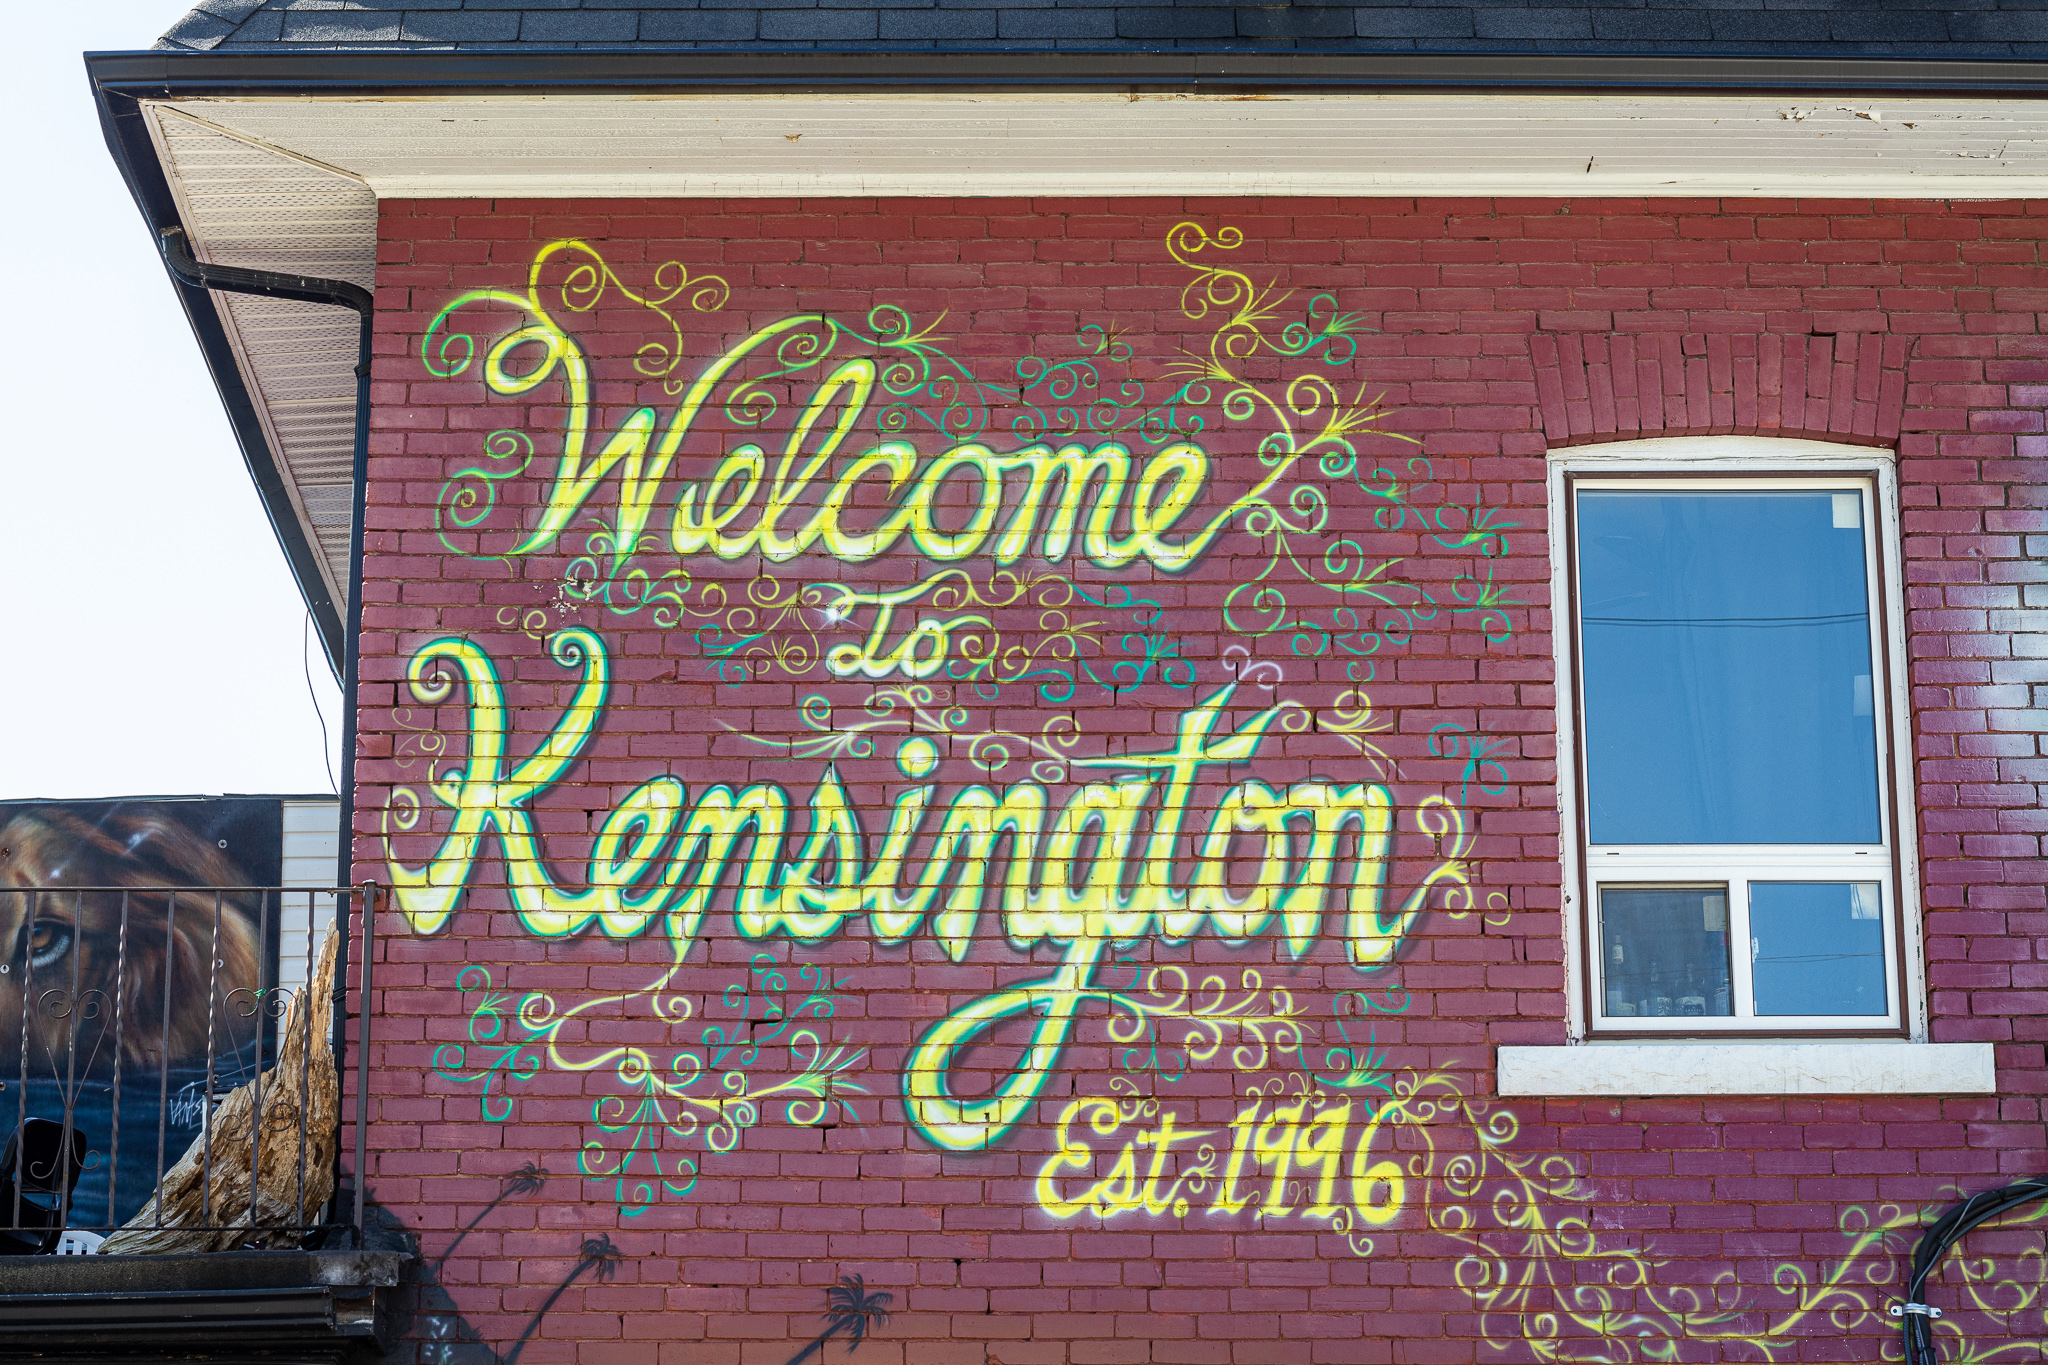 Kensington is a colorful neighborhood - not just on this wall.